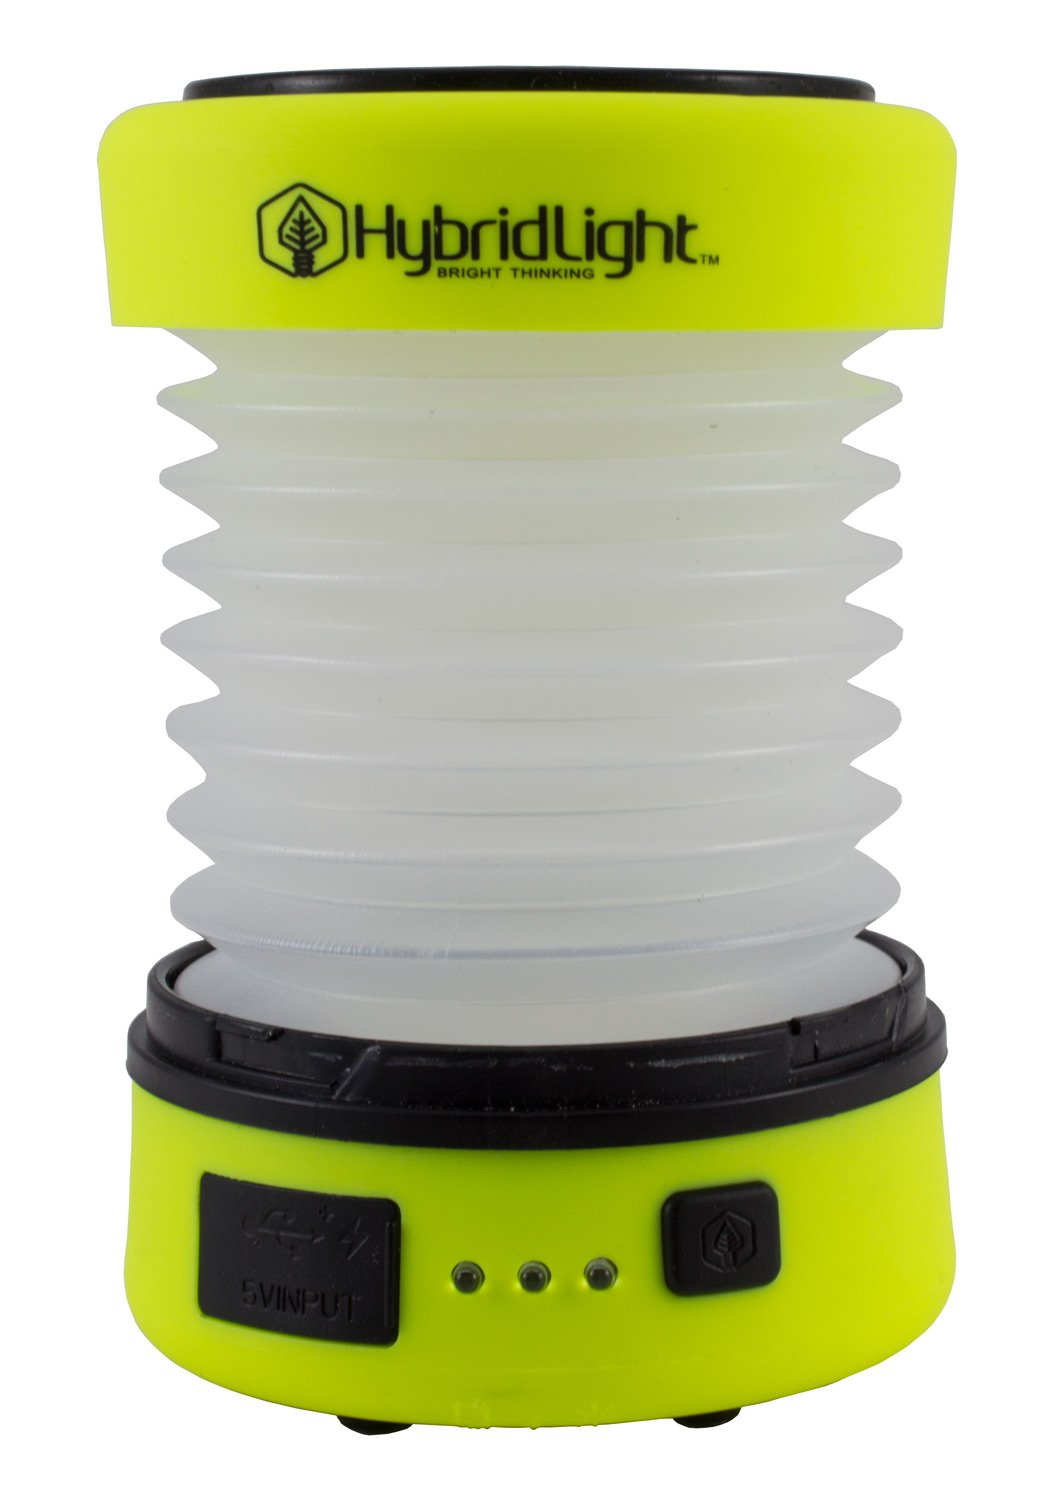 Hybridlight Solar Rechargeable Lantern/Cell Phone Charger. 150 Lm. Built in Solar Panel, Hi-Vis Yellow by Hybridlight